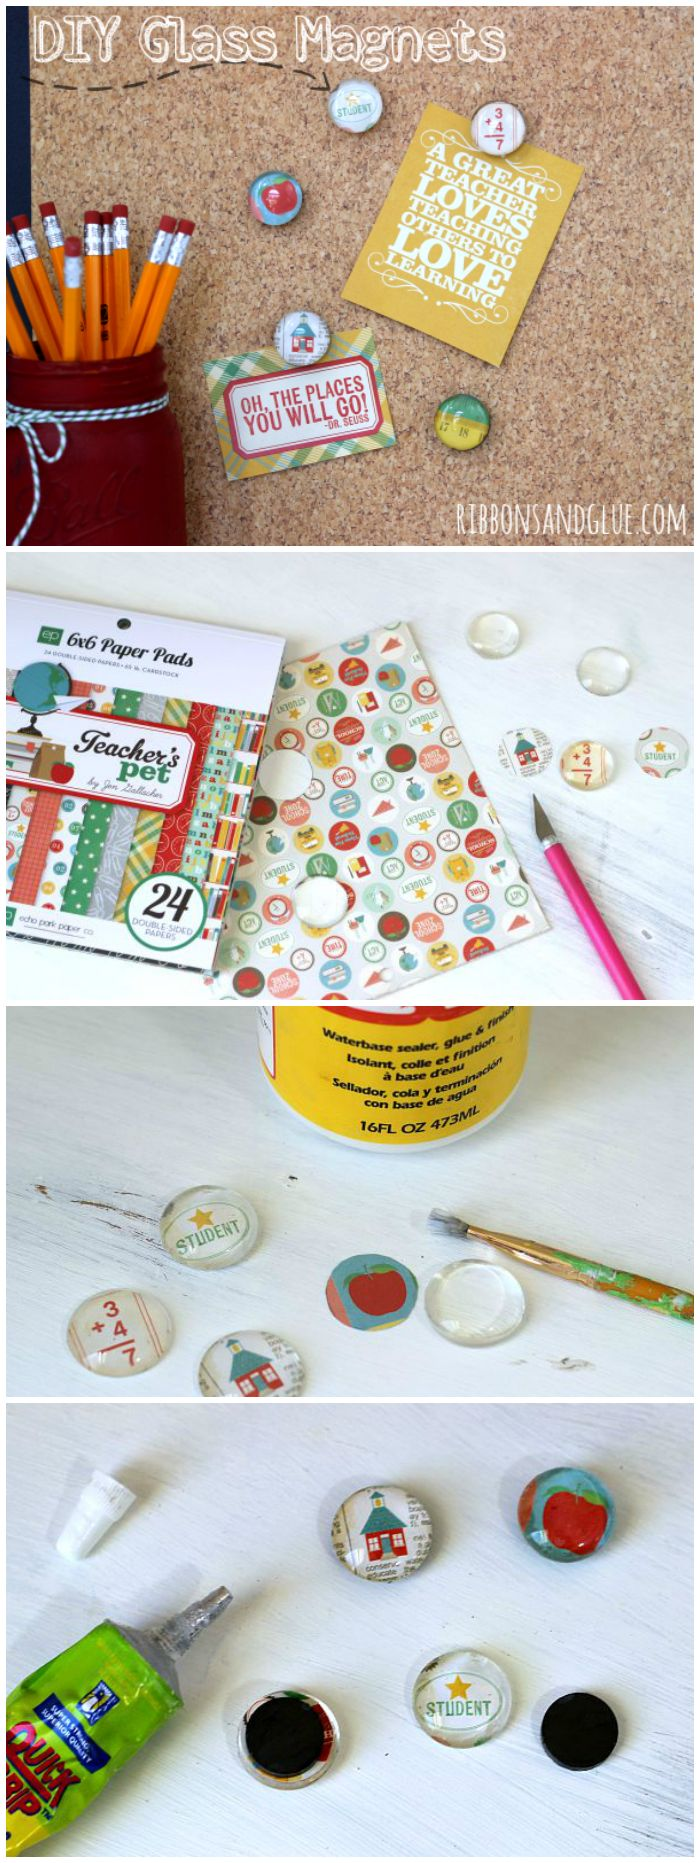 Buy magnets for crafts - How To Make Diy Glass Magnets